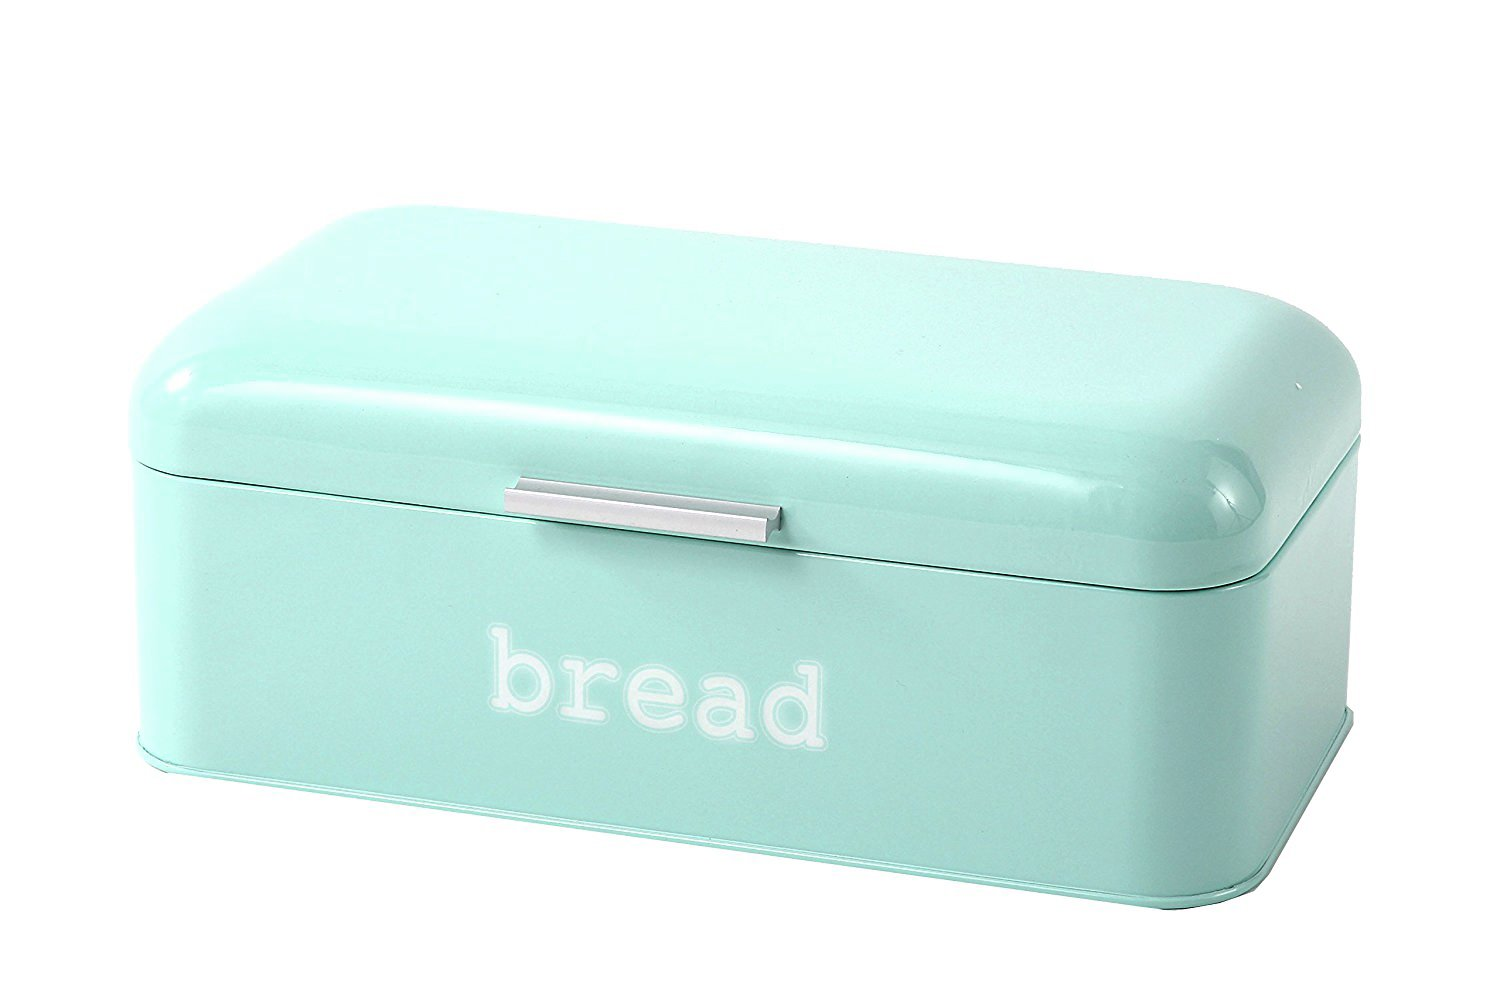 Bread Box for Kitchen Counter - Stainless Steel Bread Bin, Dry Food Storage Container for Loaves, Pastries, Toast and More - Retro Vintage Design, Light Blue, 16.75 x 9 x 6.5 inches